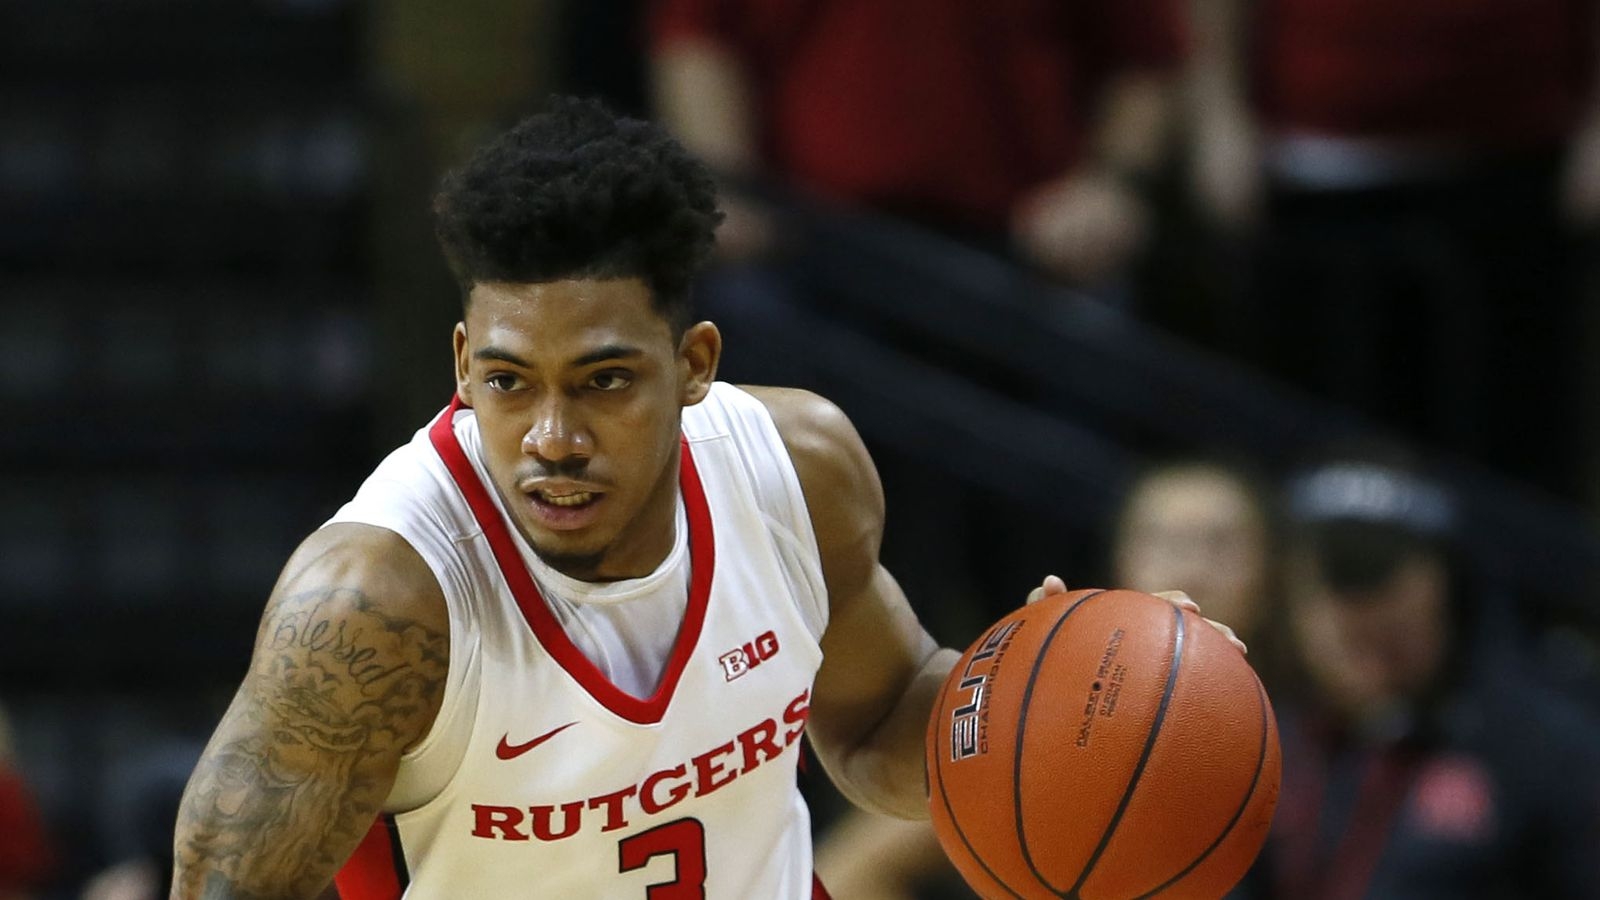 Maryland basketball vs. Rutgers preview: Terps return home to face the Scarlet Knights - Testudo ...